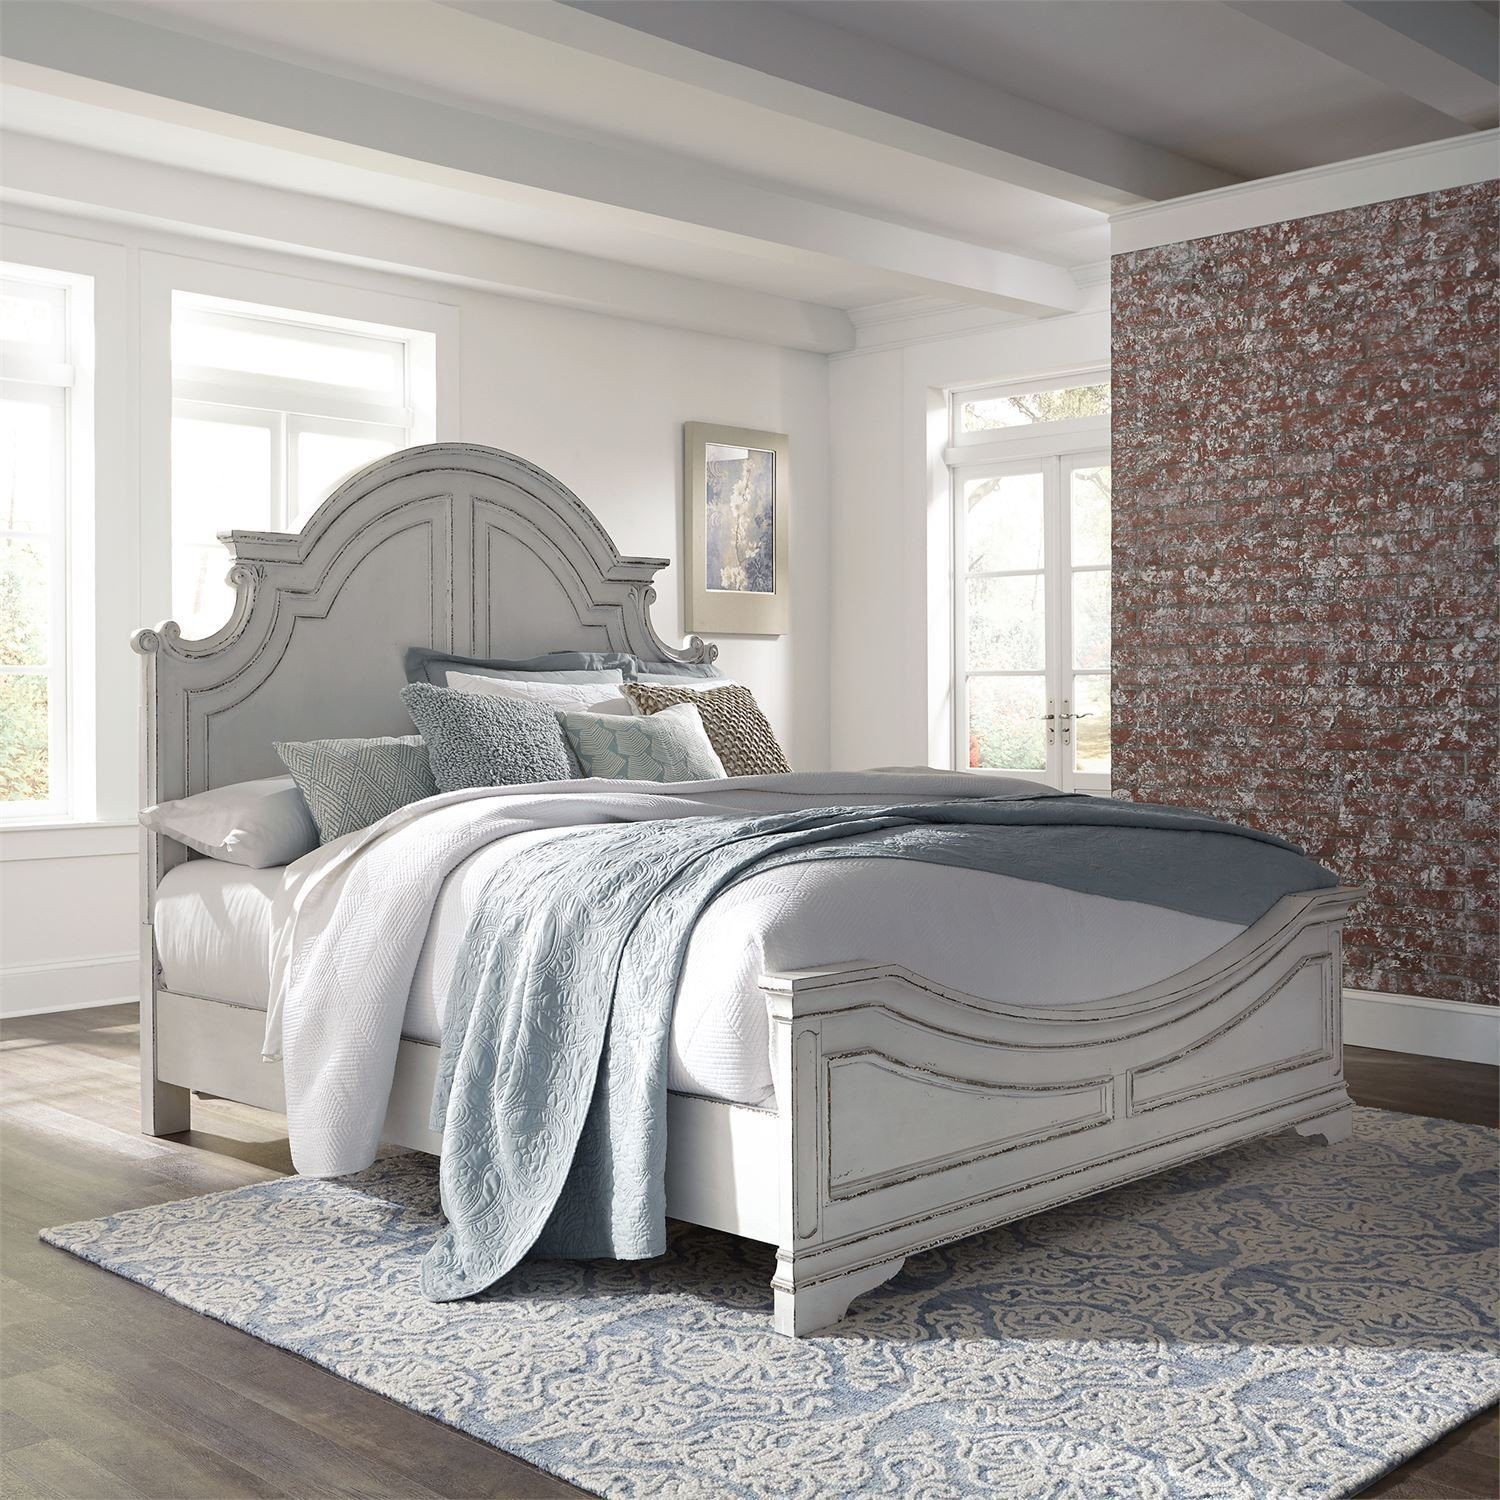 Ashley Furniture Wichita Falls: Magnolia Manor Antique White Panel Bedroom Set